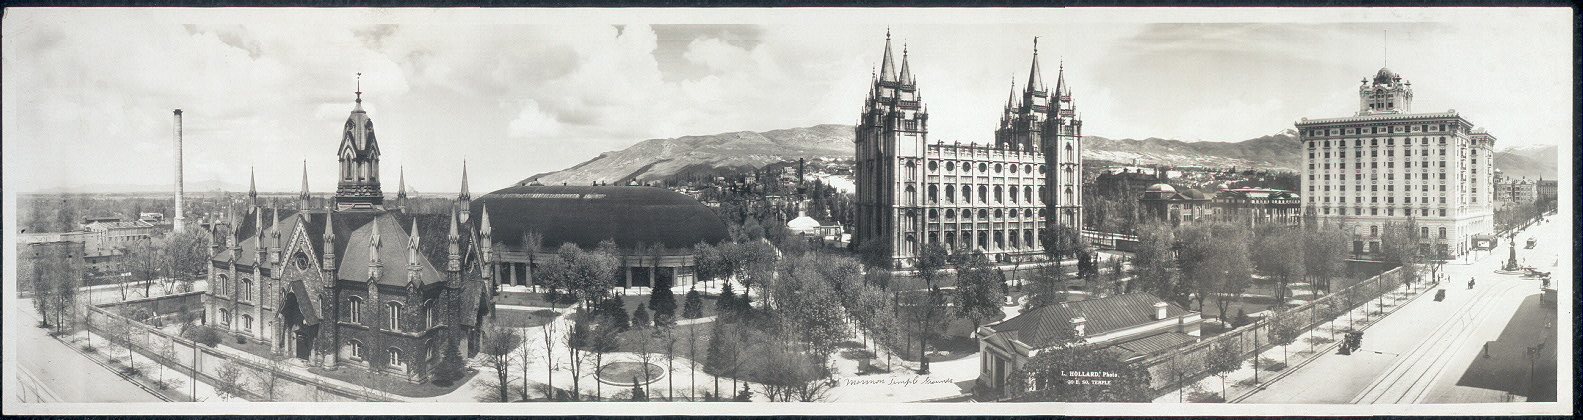 Salt Lake City, Utah, L. Hollard, photographer, 1912. Taking the Long View: Panoramic Photographs, 1851-1991